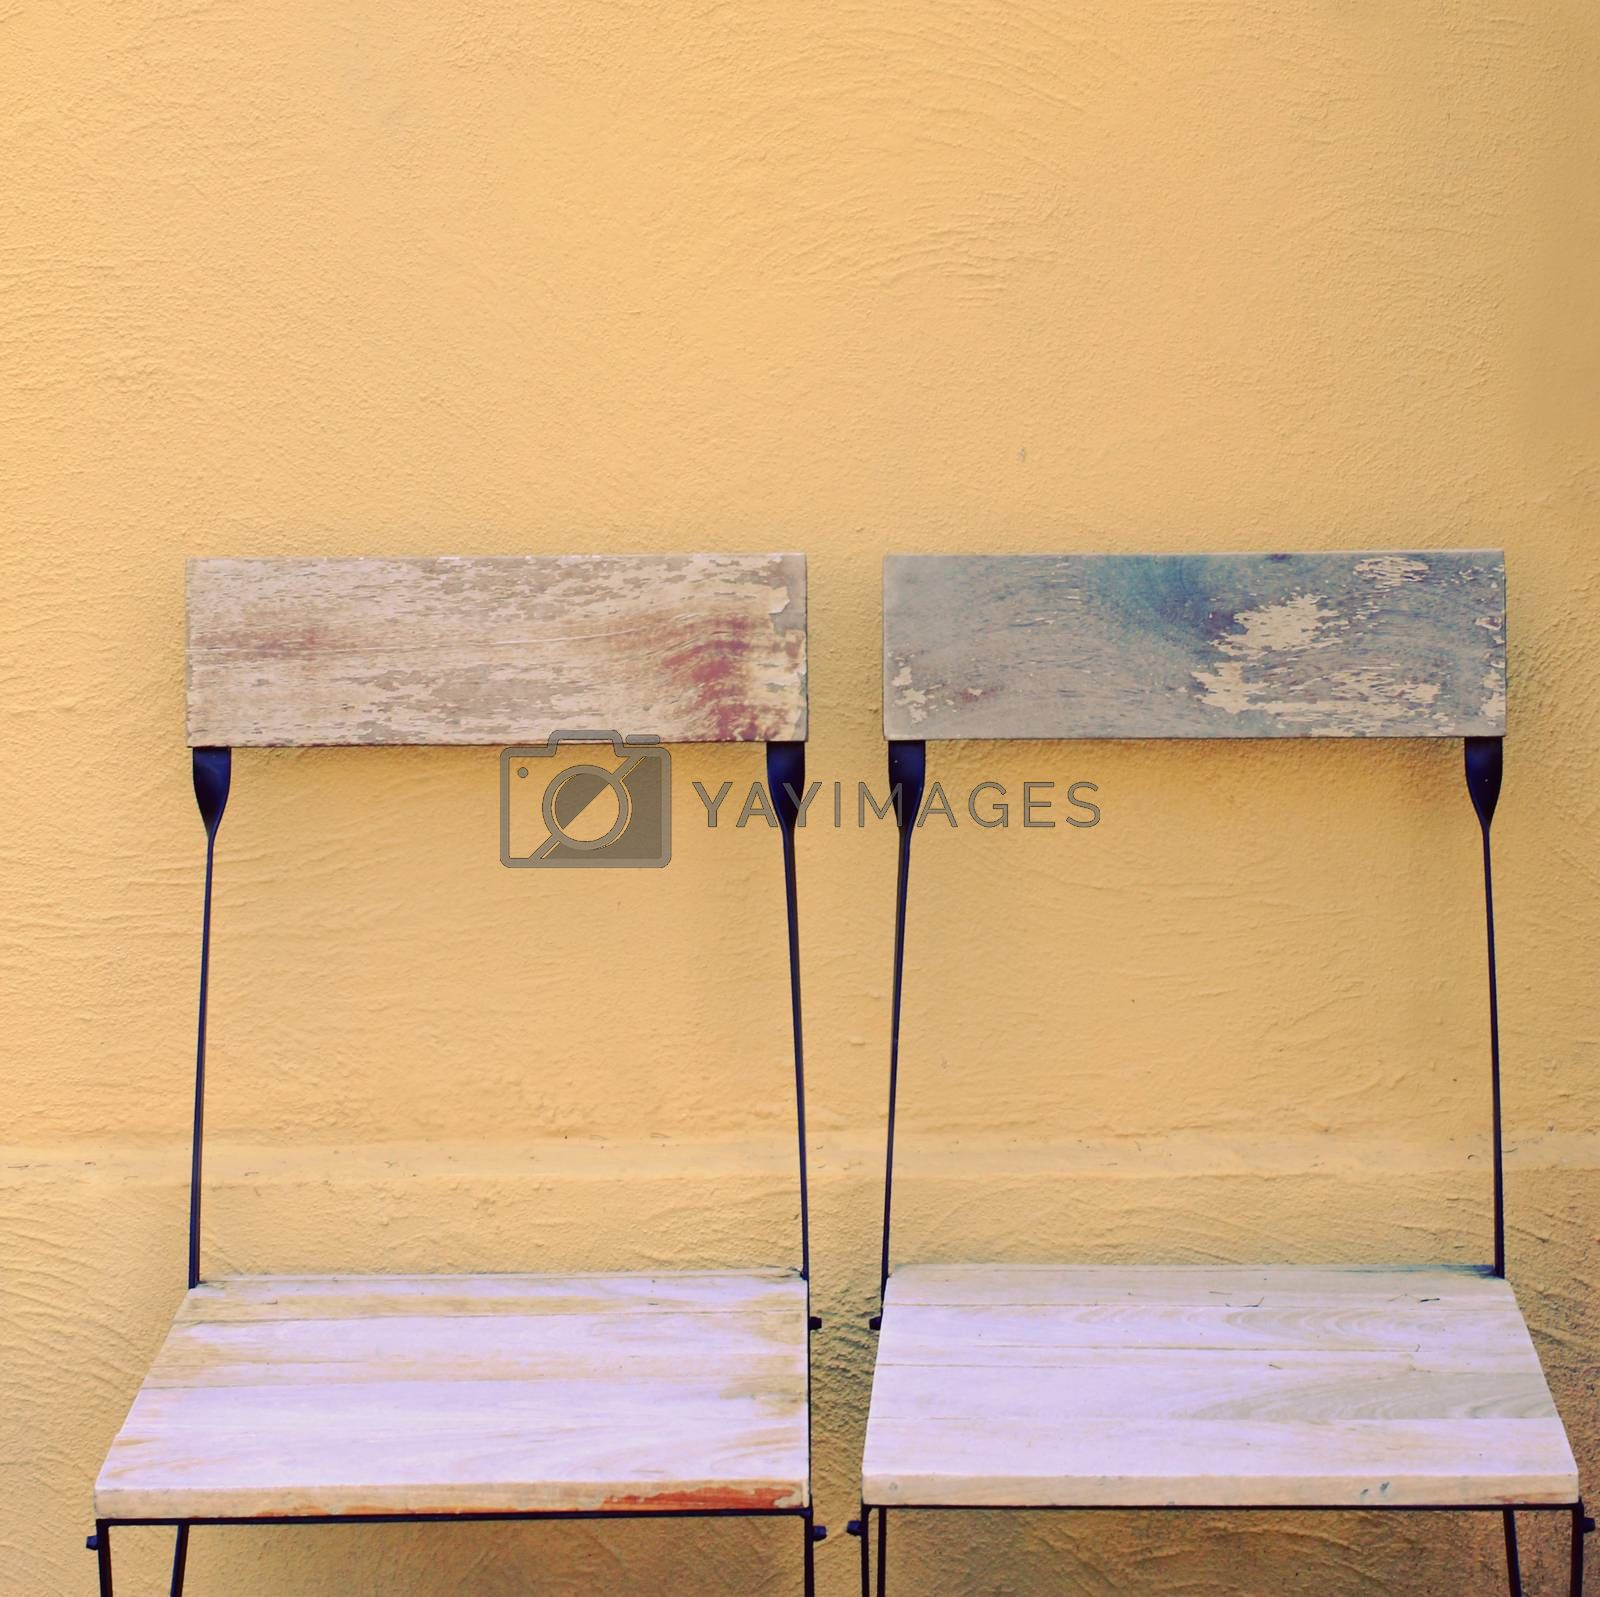 Outdoor wooden chairs with retro filter effect